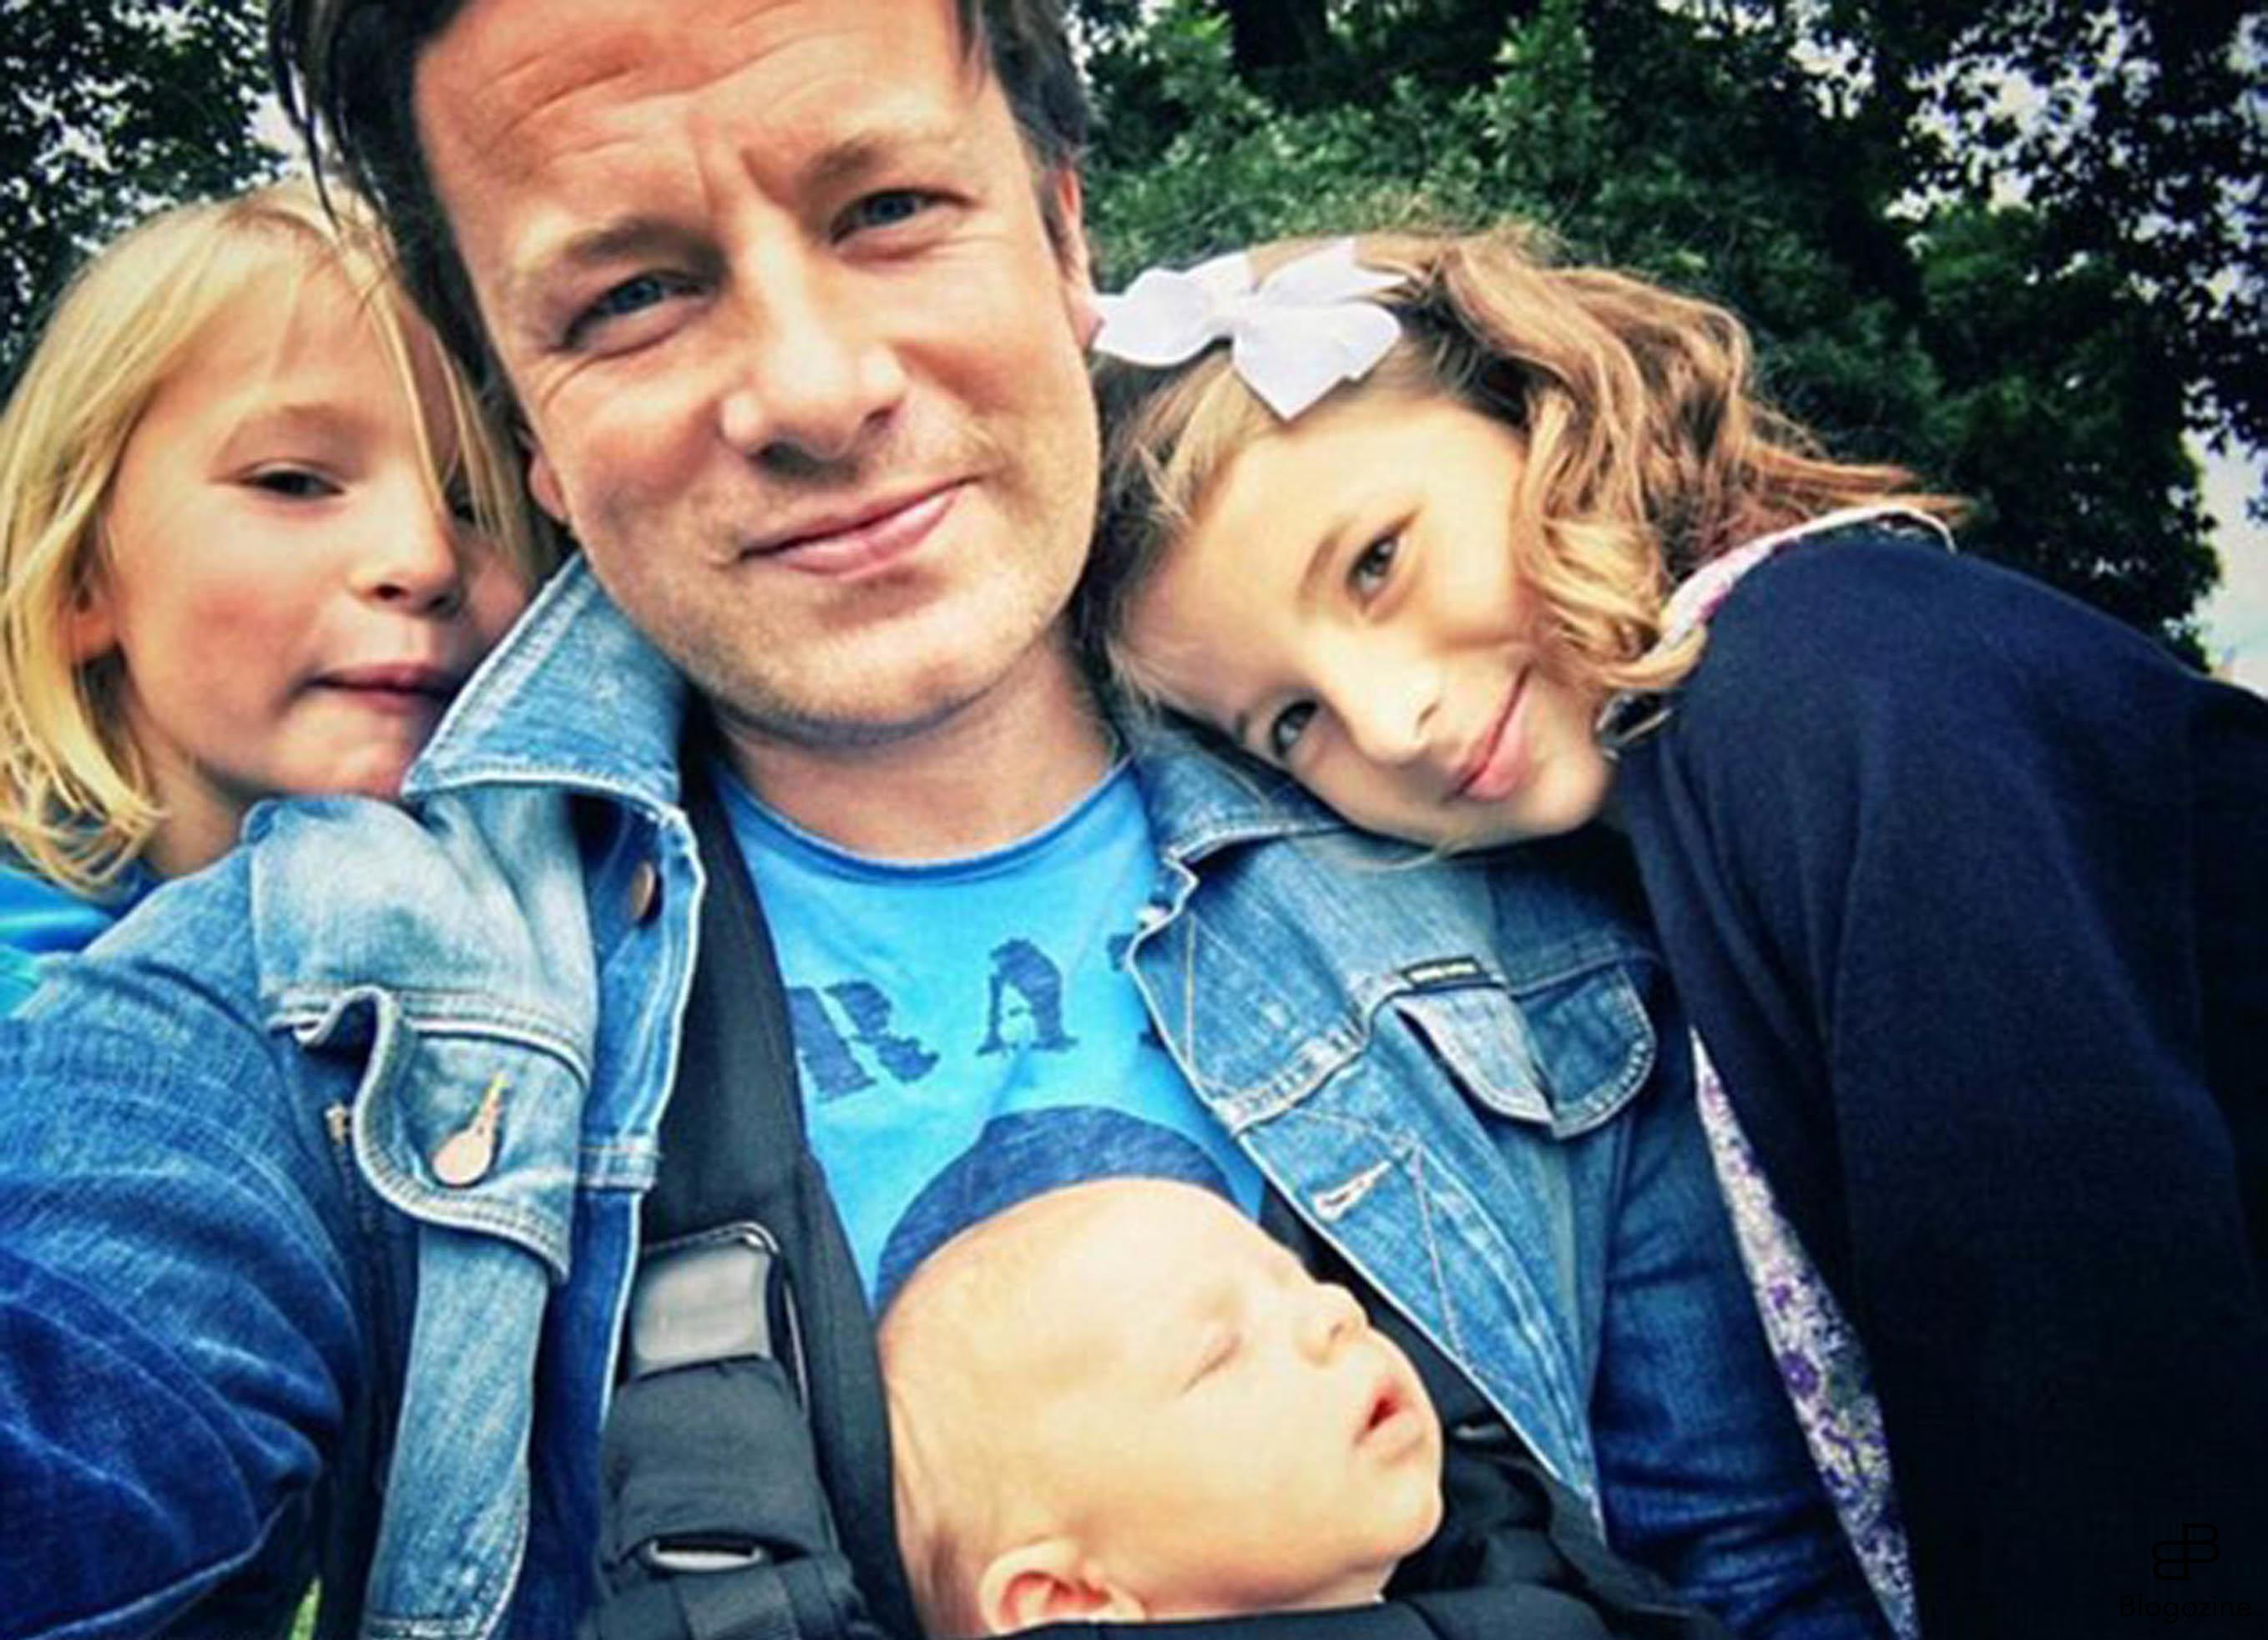 6222863 29-9-2016 Celebrity Selfies Pictured: Jamie Oliver with his kids PLANET PHOTOS www.planetphotos.co.uk info@planetphotos.co.uk +44 (0)20 8883 1438 DISTR. STELLA PICTURES